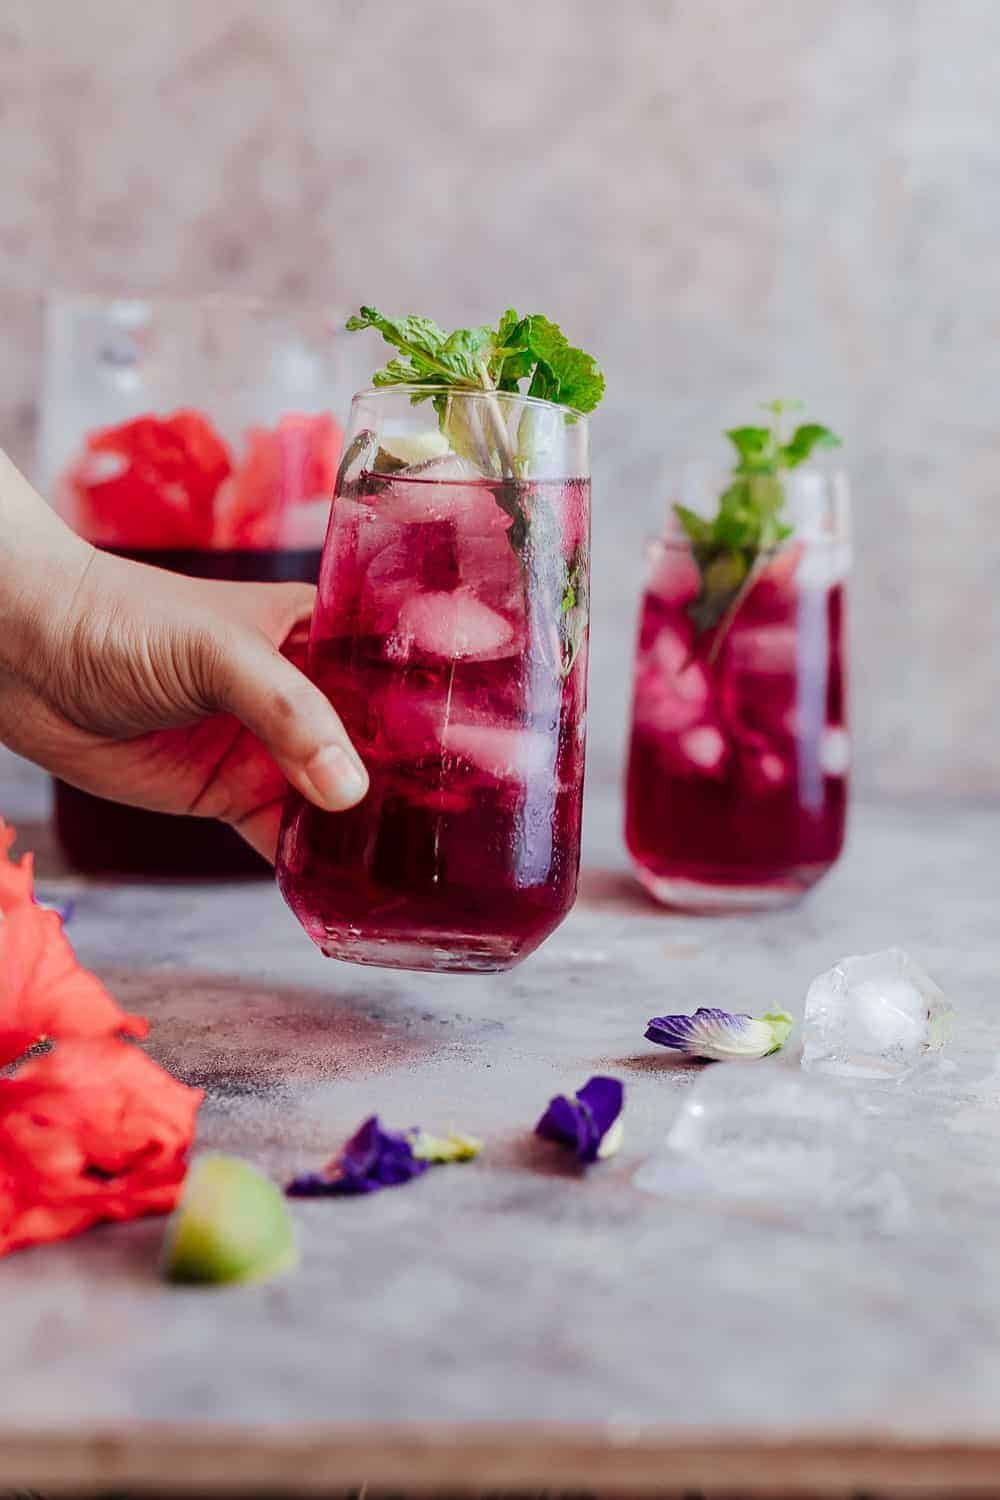 How To Make Hibiscus Tea Benefits And Side Effects